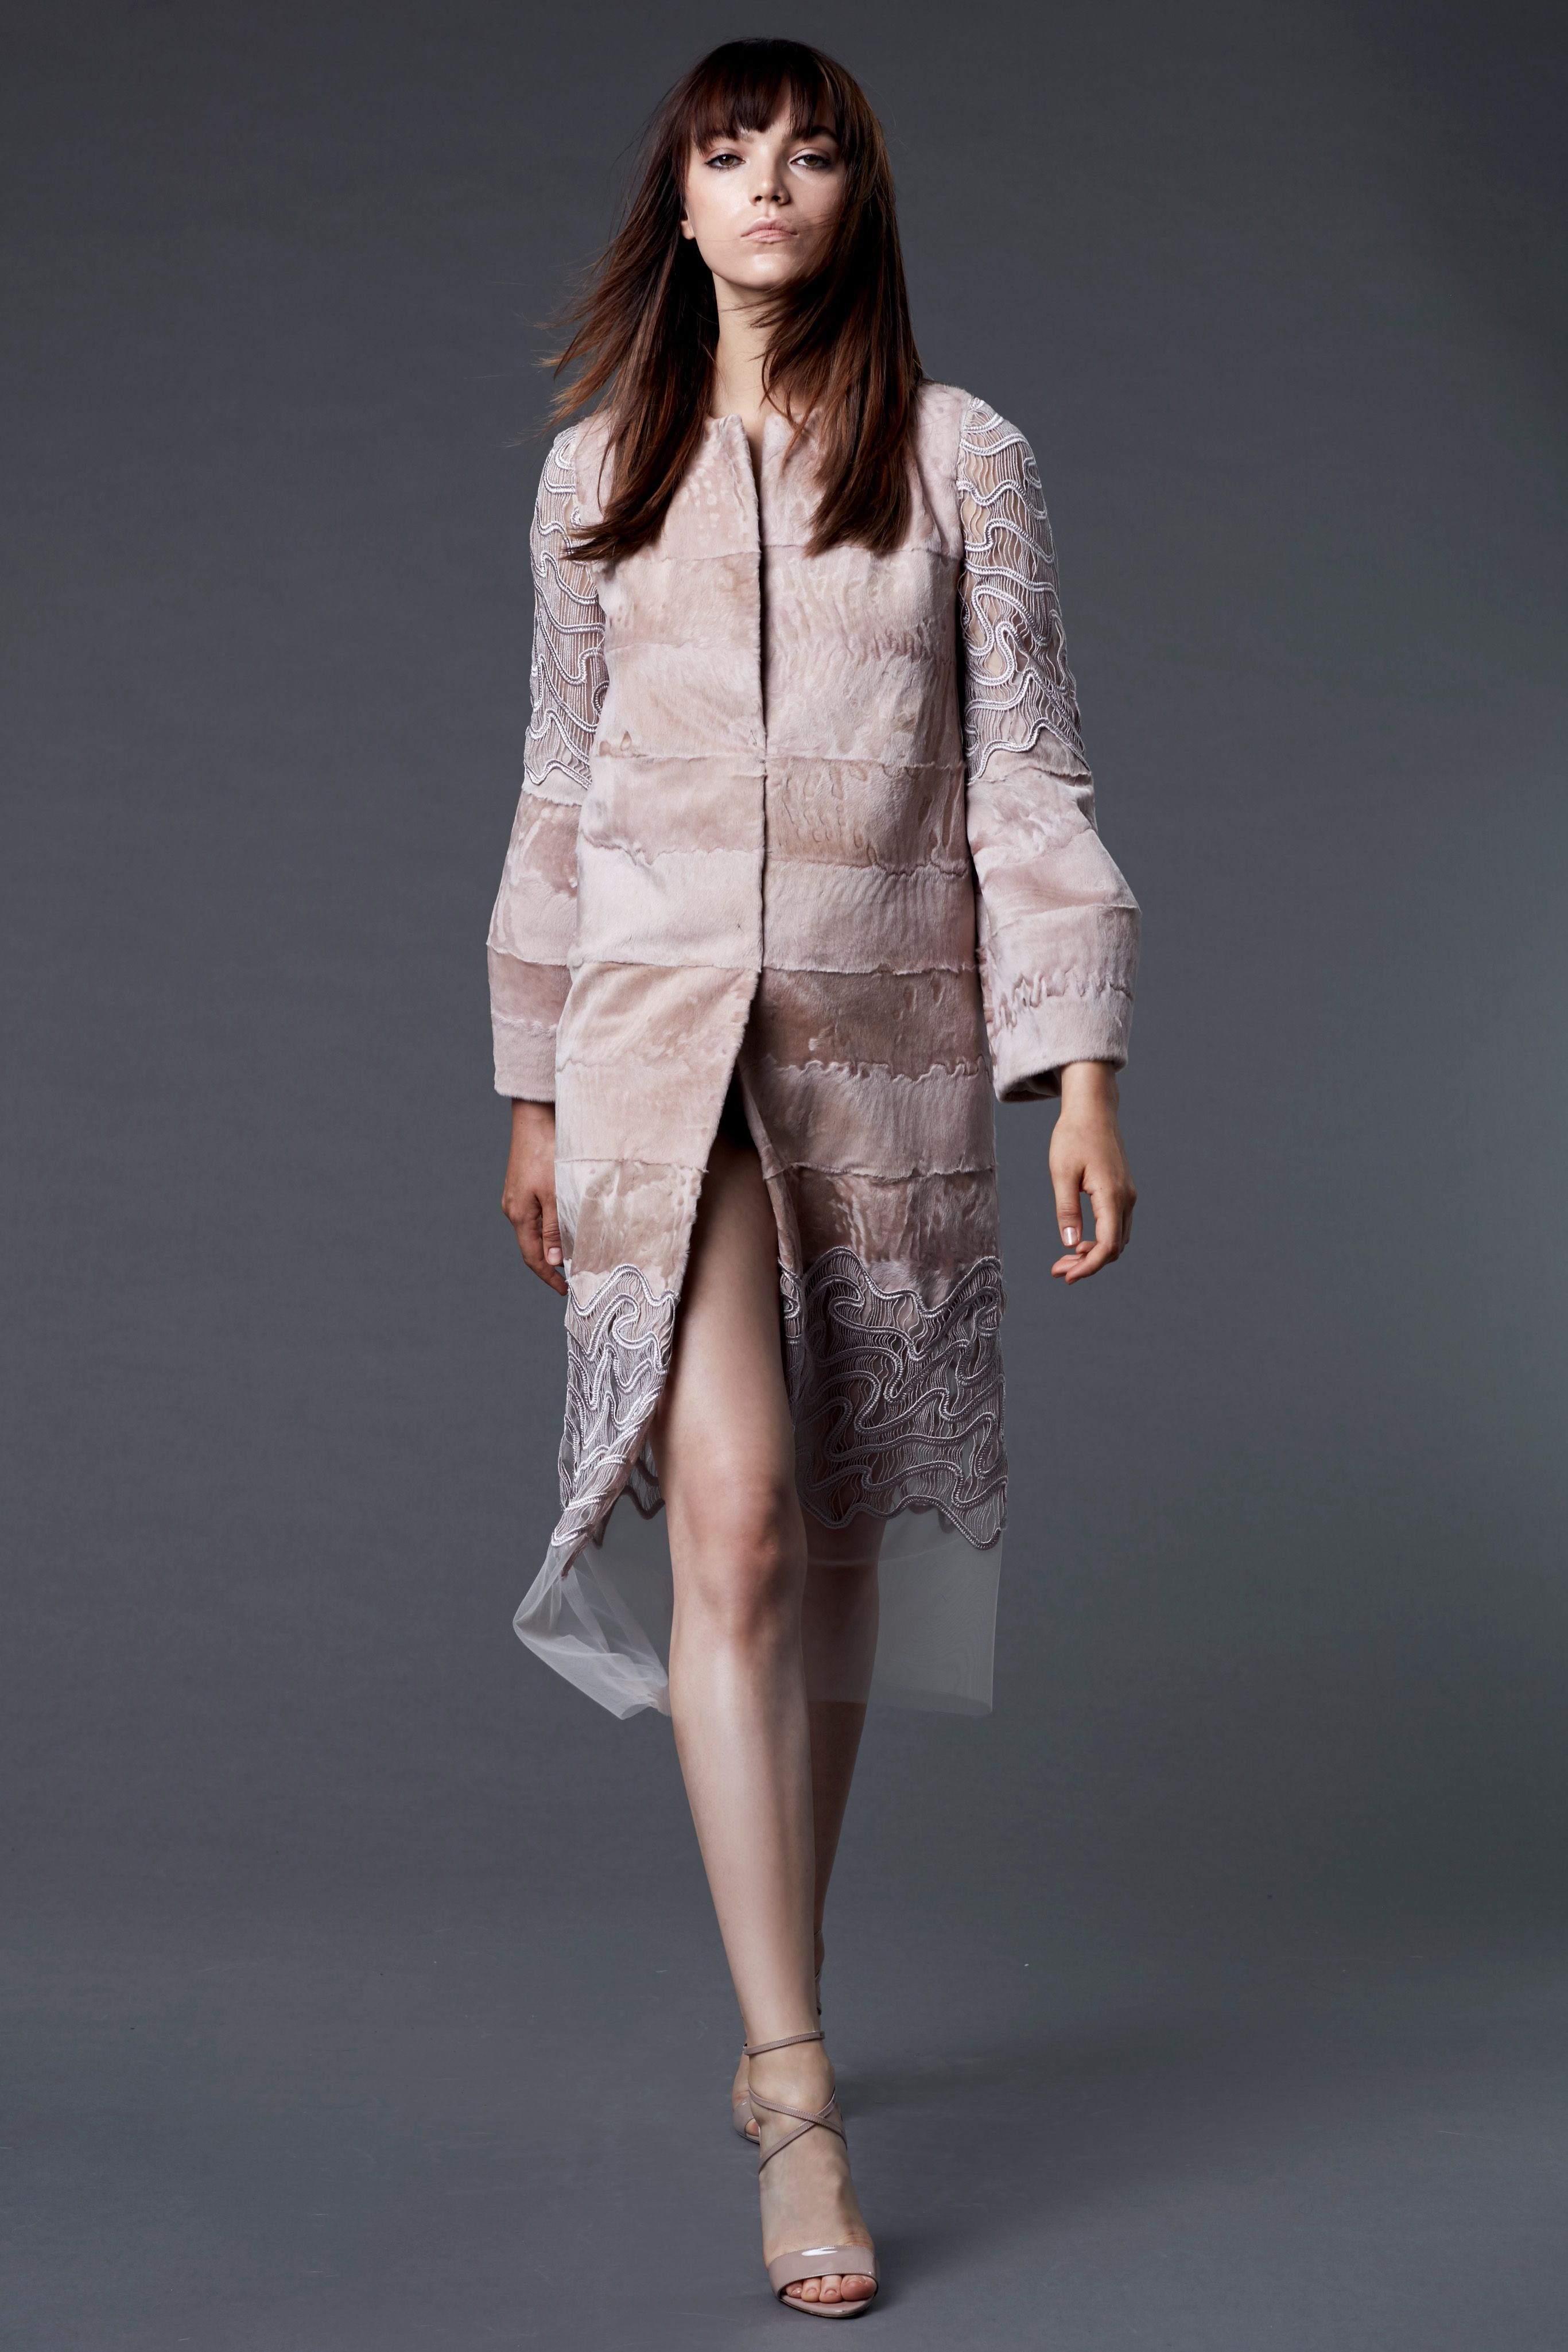 Dennis basso resort ash rose broadtail and lace coat fashion